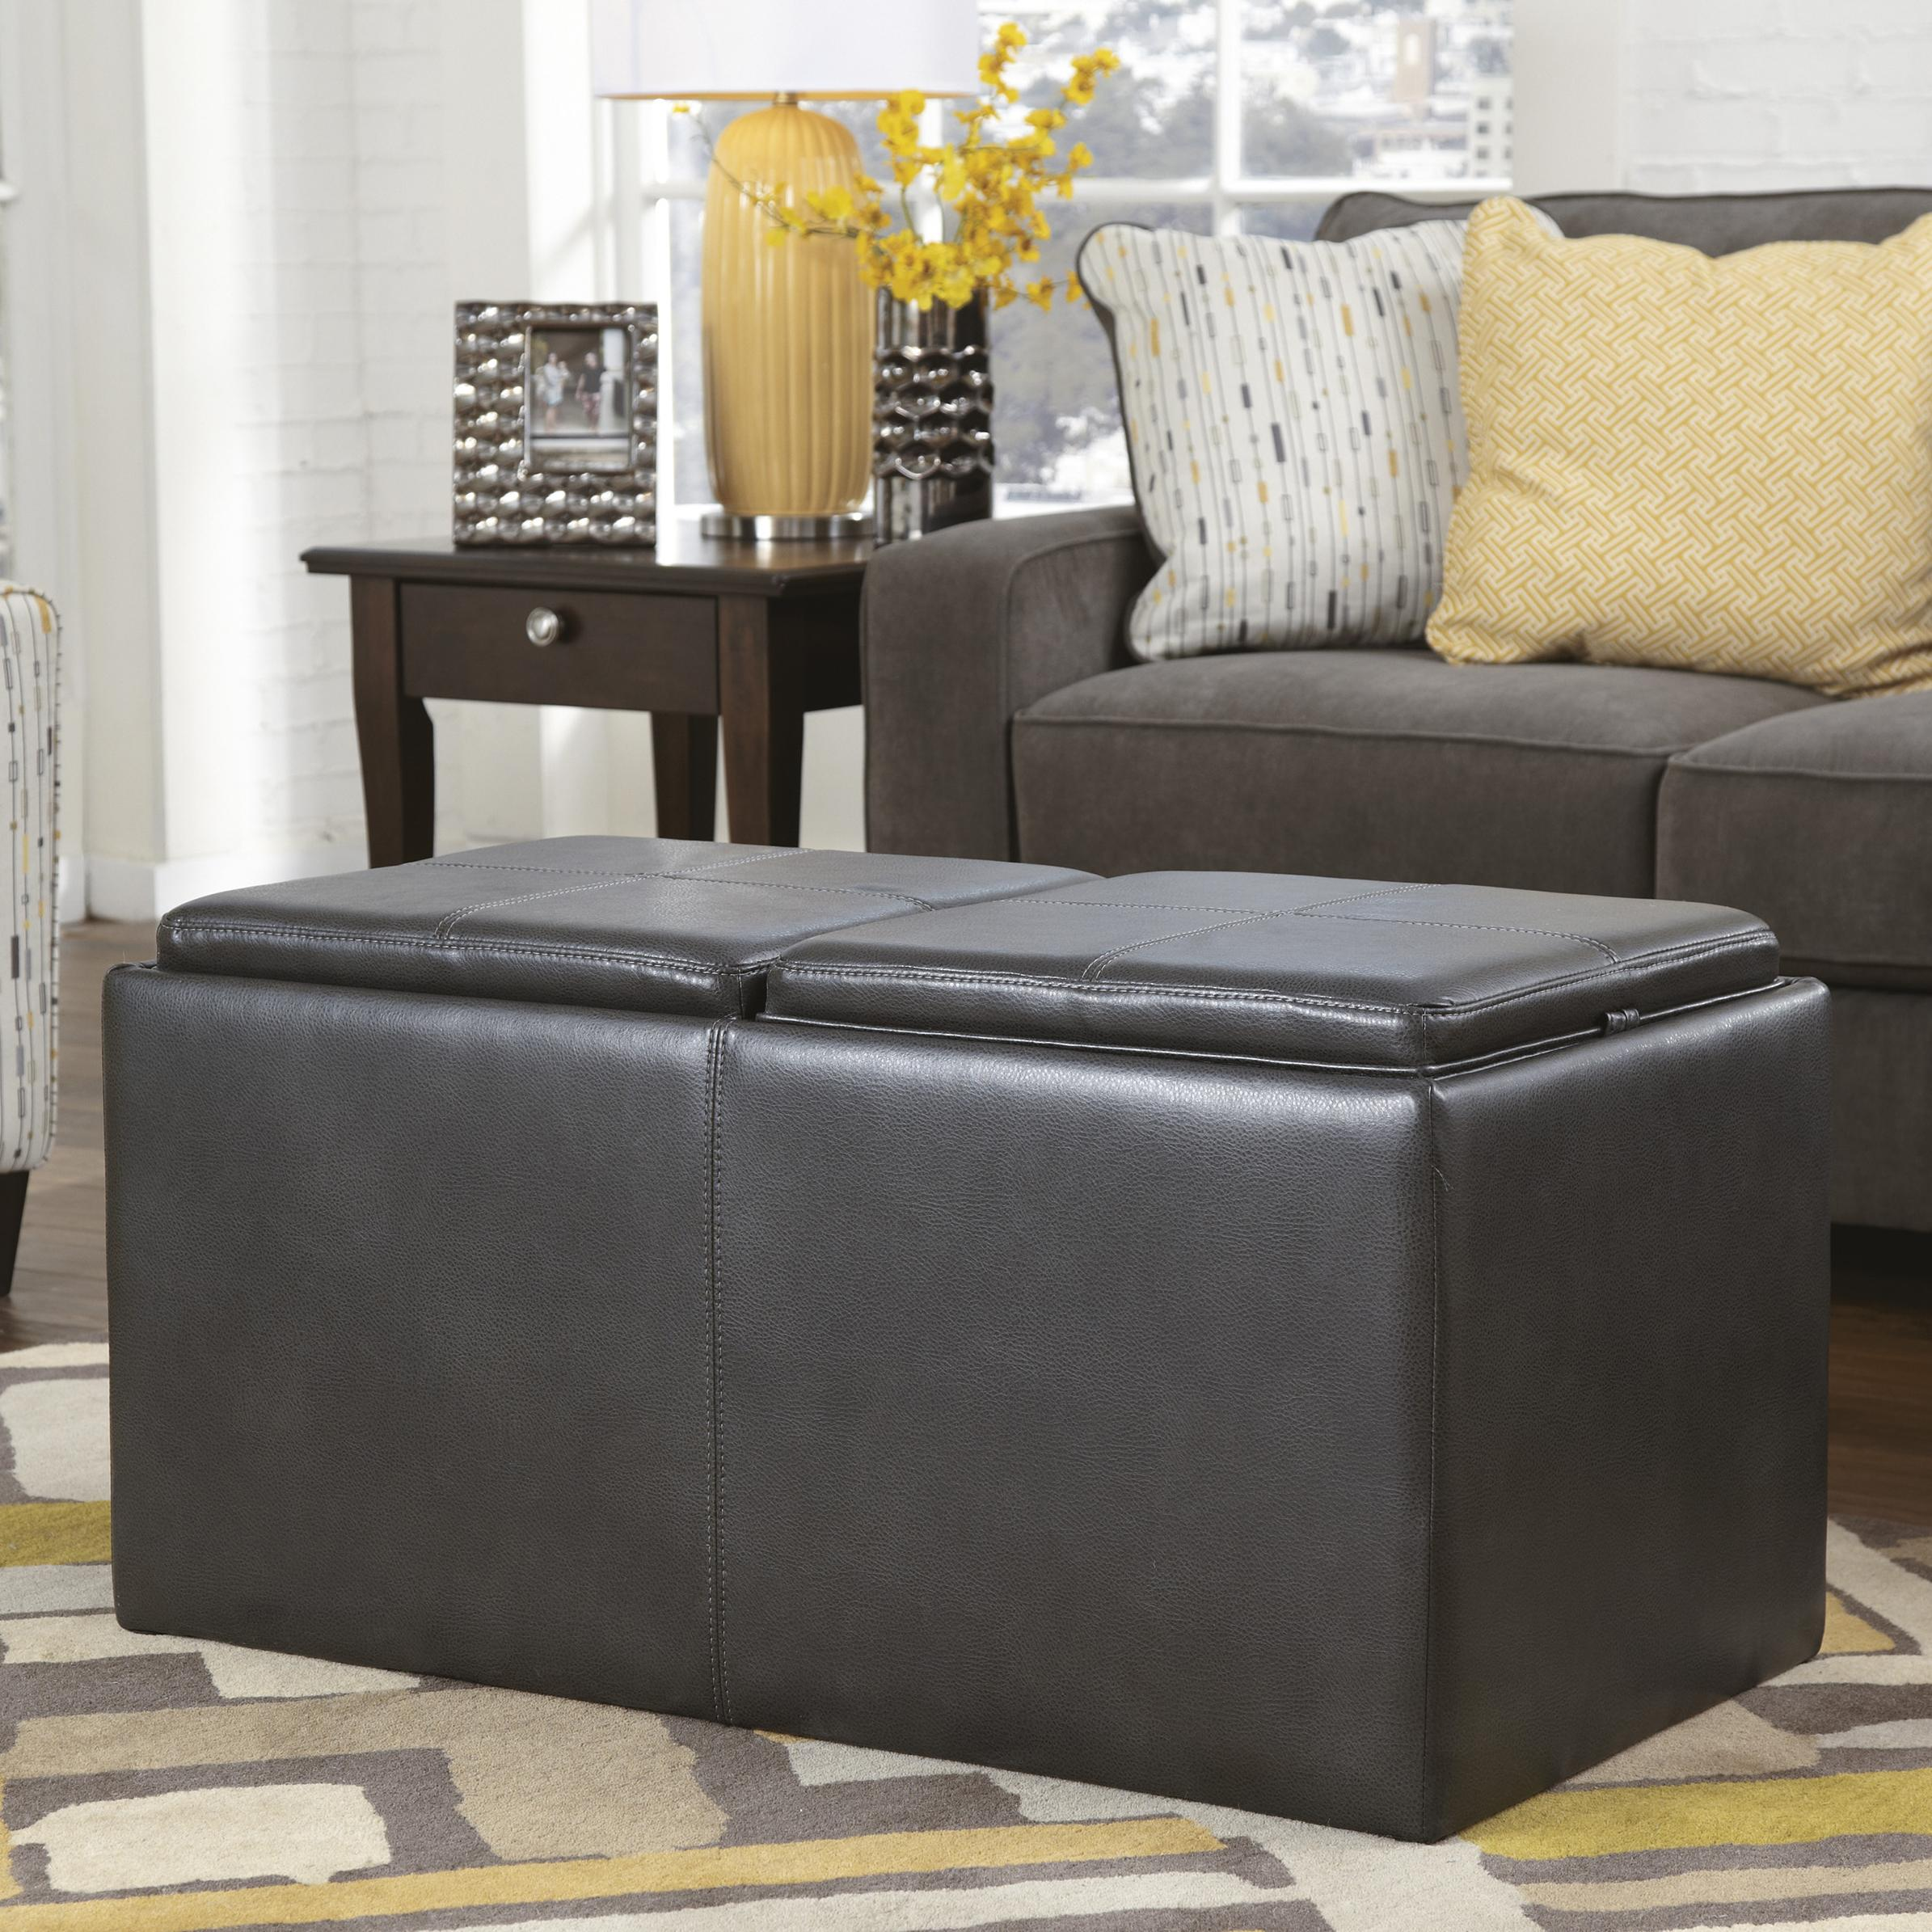 Signature Design by Ashley Hodan Ottoman With Storage - Item Number: 7970011